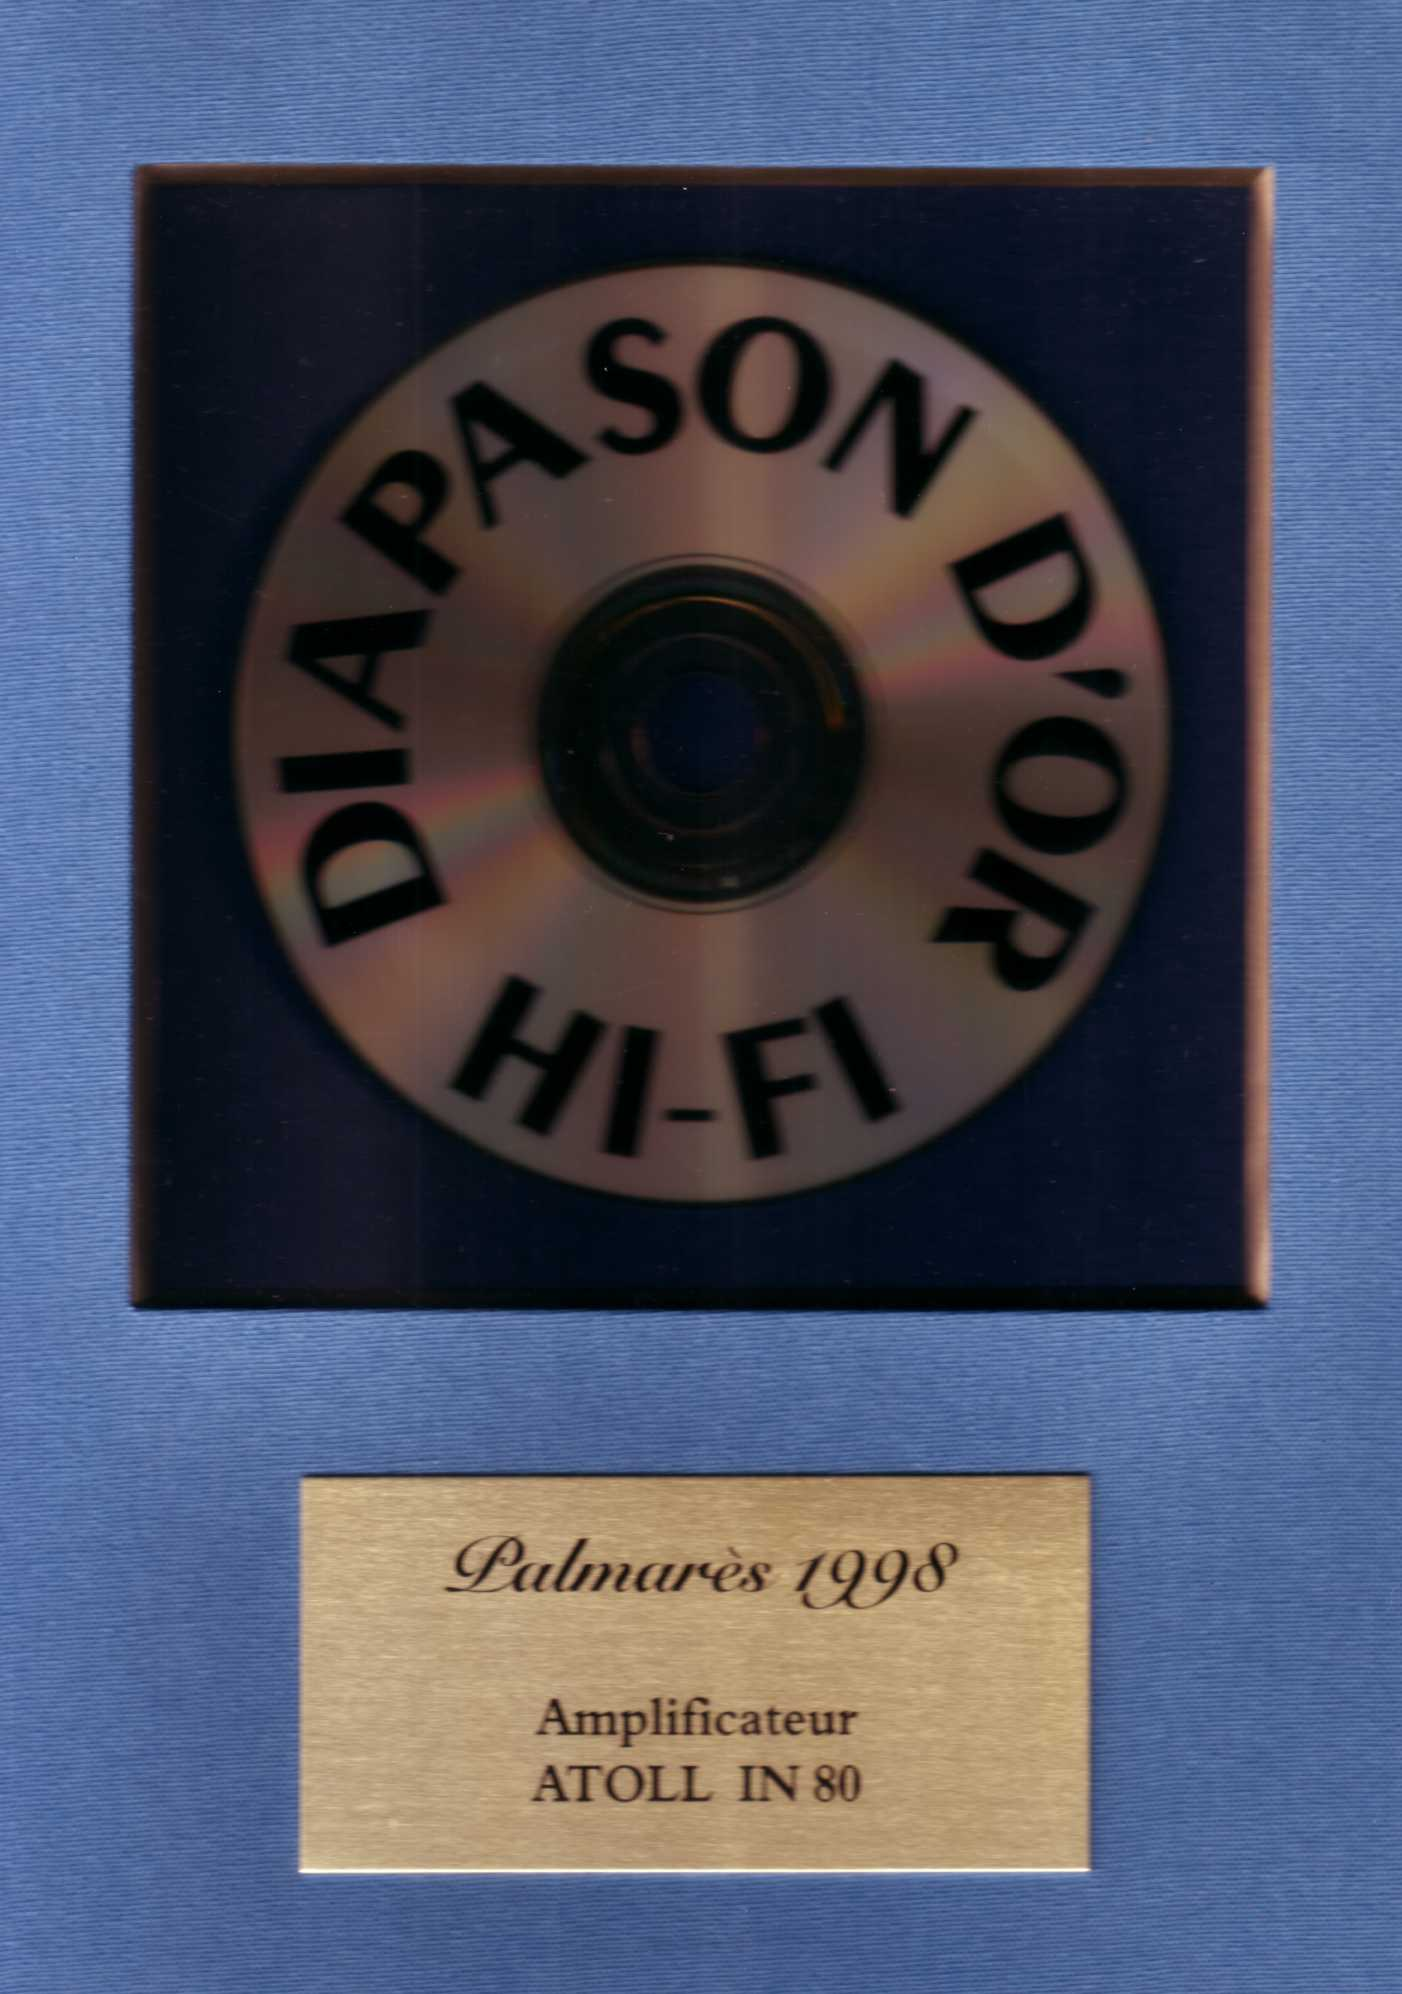 DIAPASON OR IN80